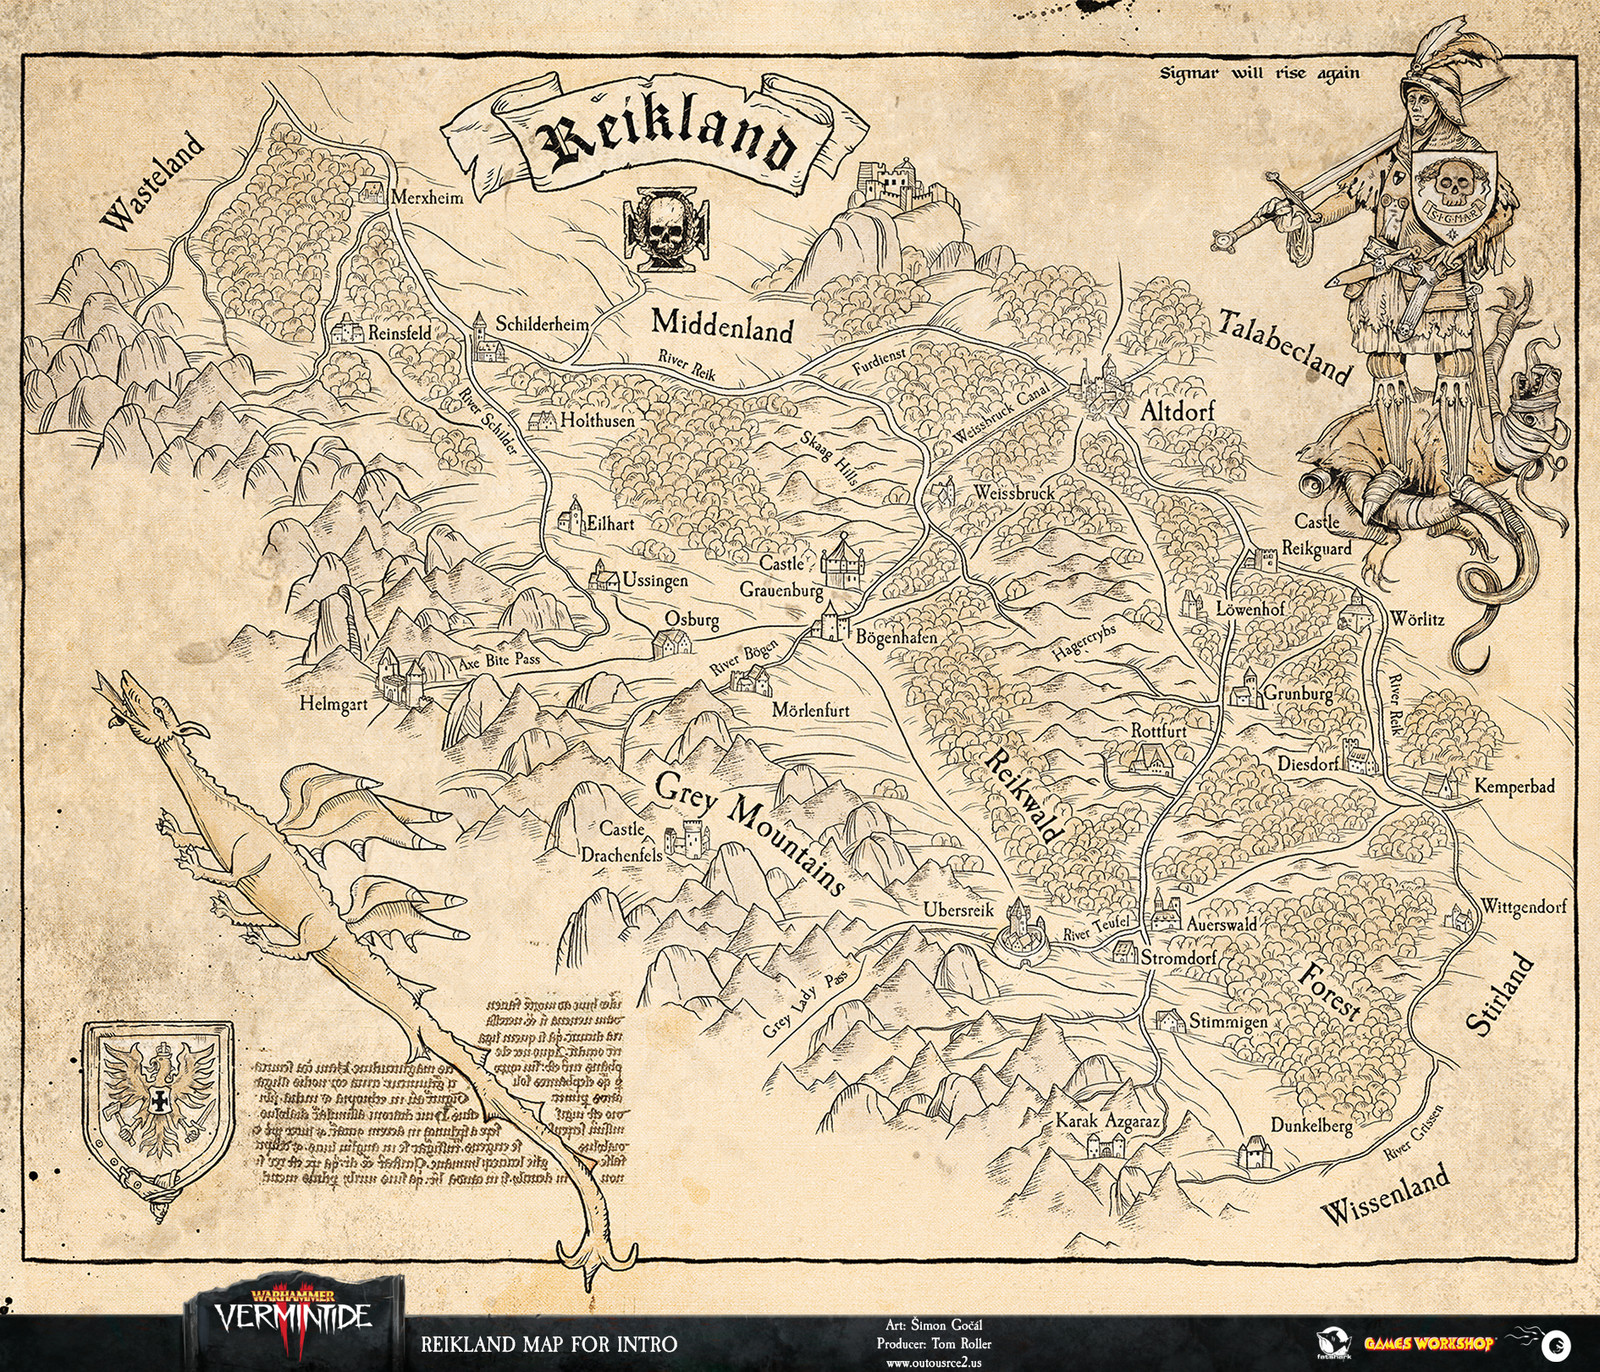 Just like in the times of the medieval cartography, the maps of Warhammer are made from known information but the details are open to each cartographer's interpretation. This is our take.